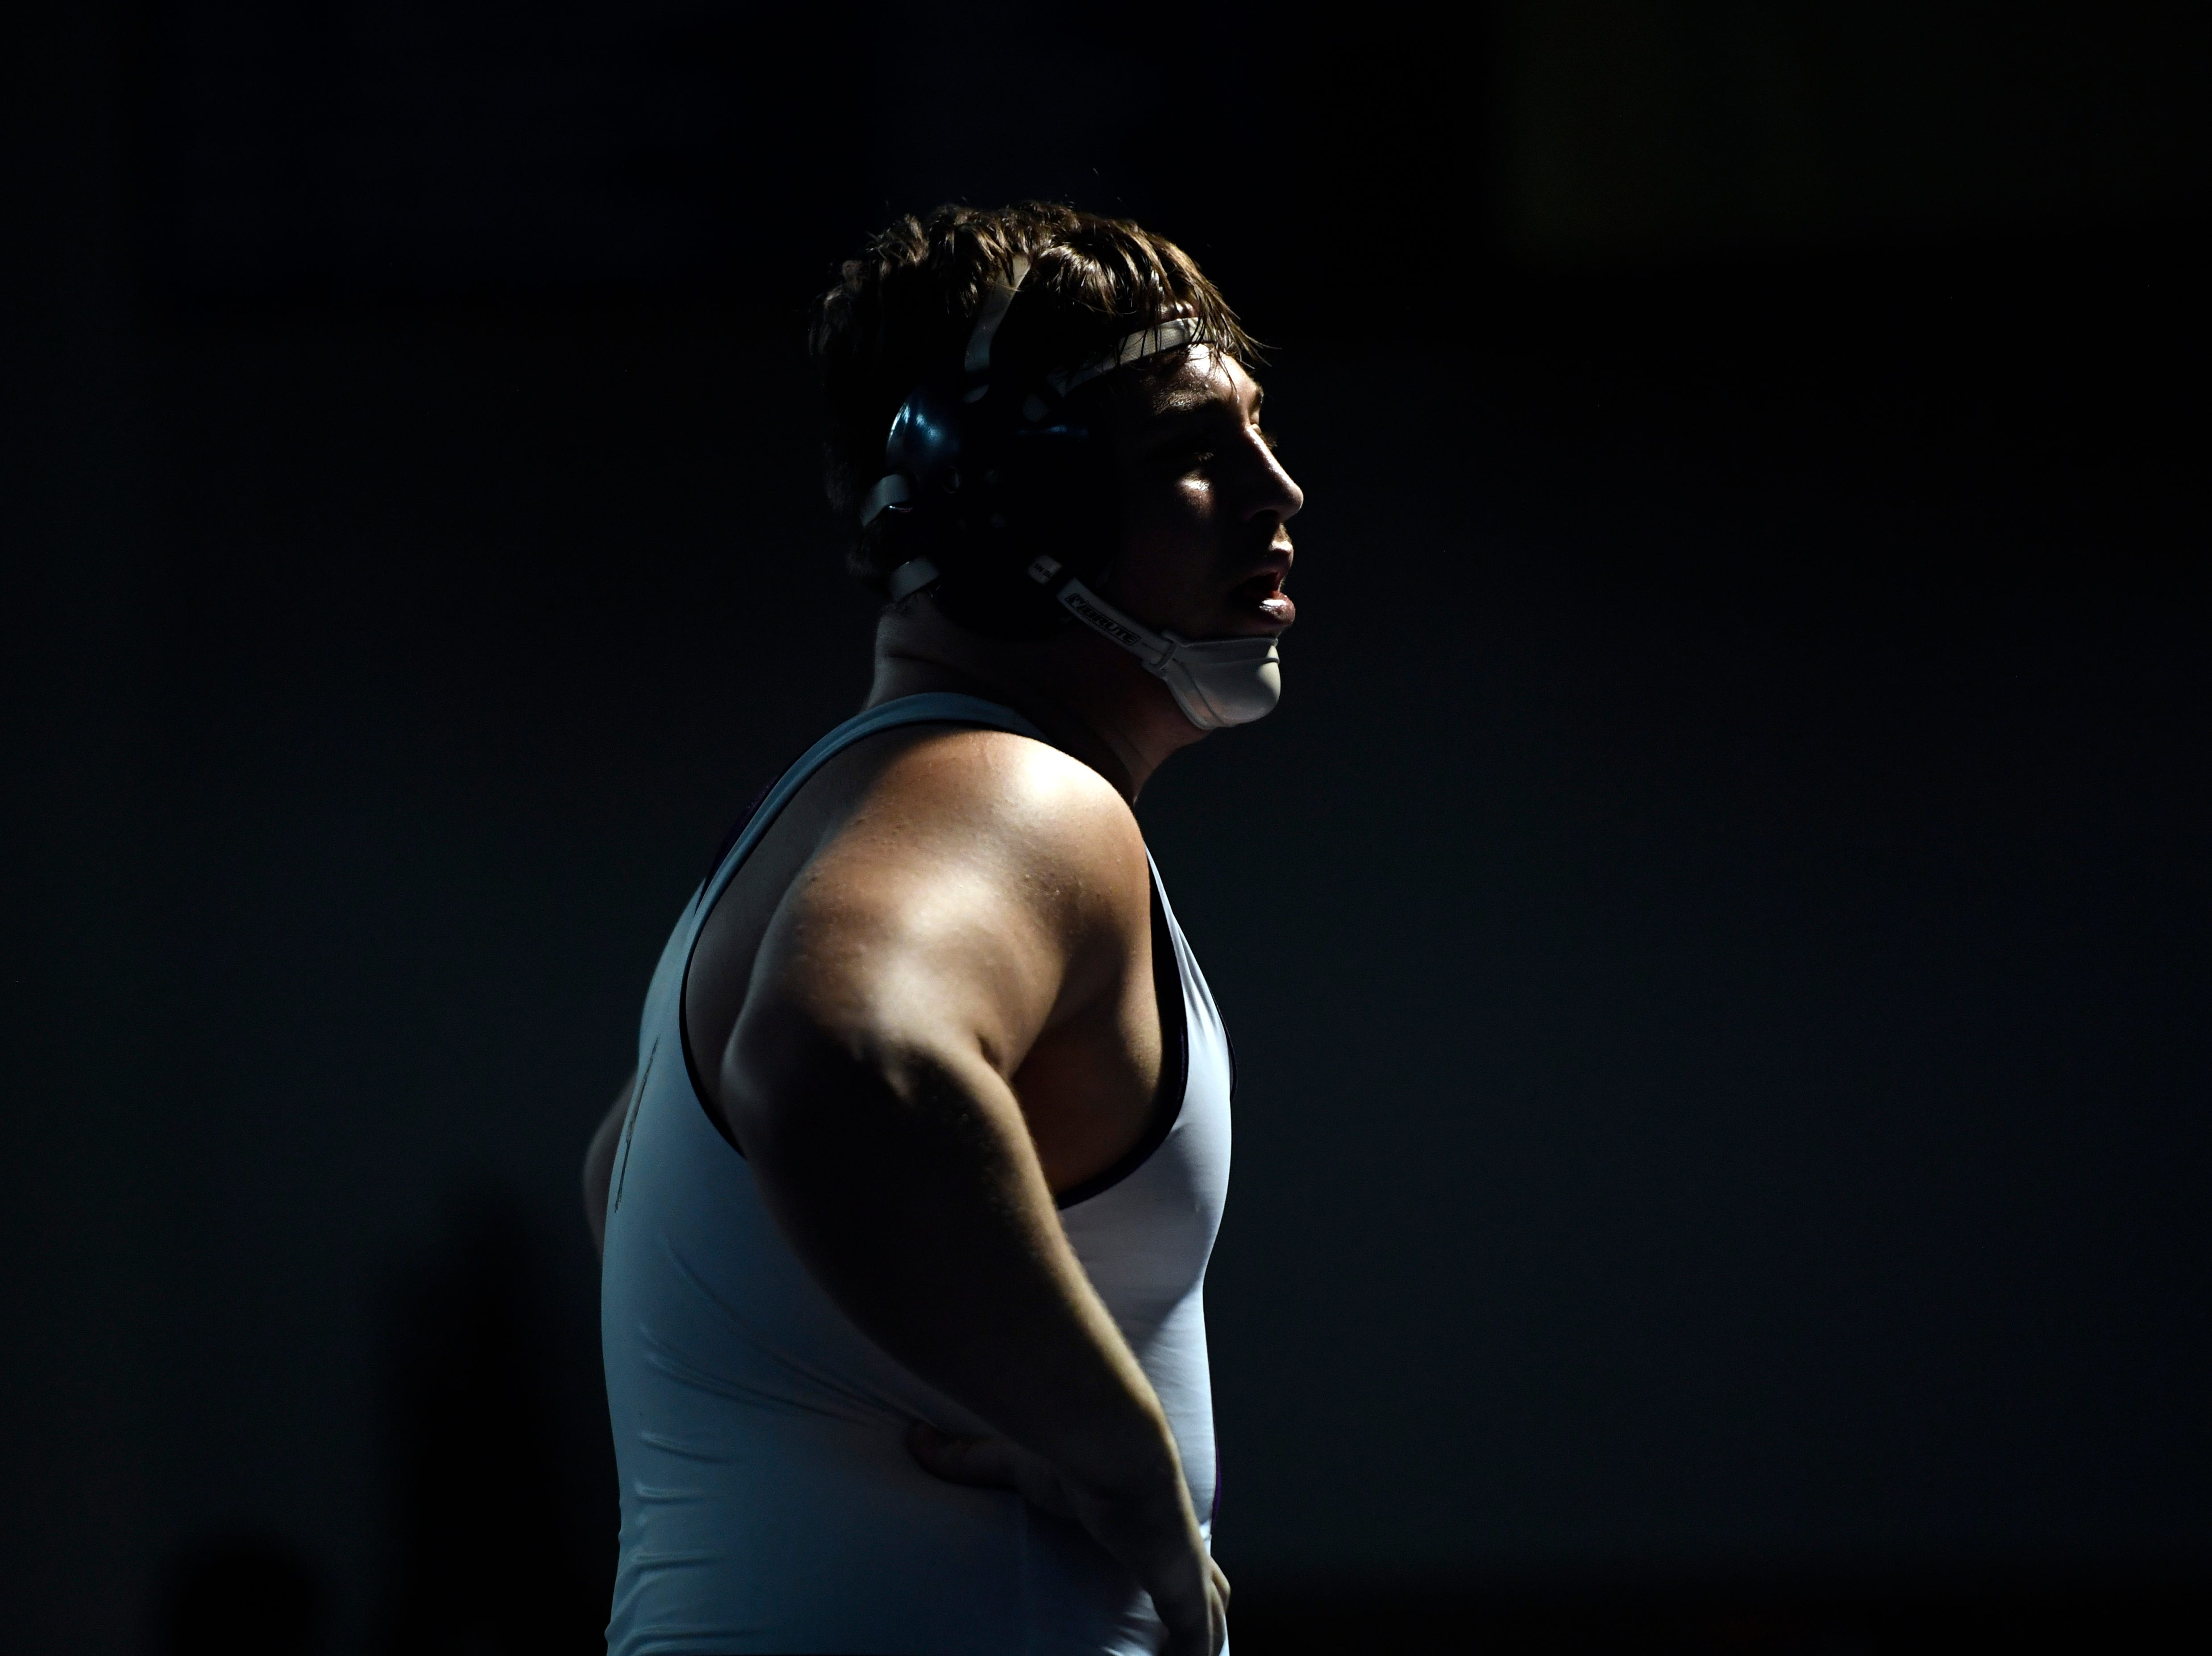 Michael Filieri of Garfield looks towards his coaches during his 220-pound final in the Sam Cali Battle for the Belt final on Sunday, Jan. 6, 2019, in West Orange.